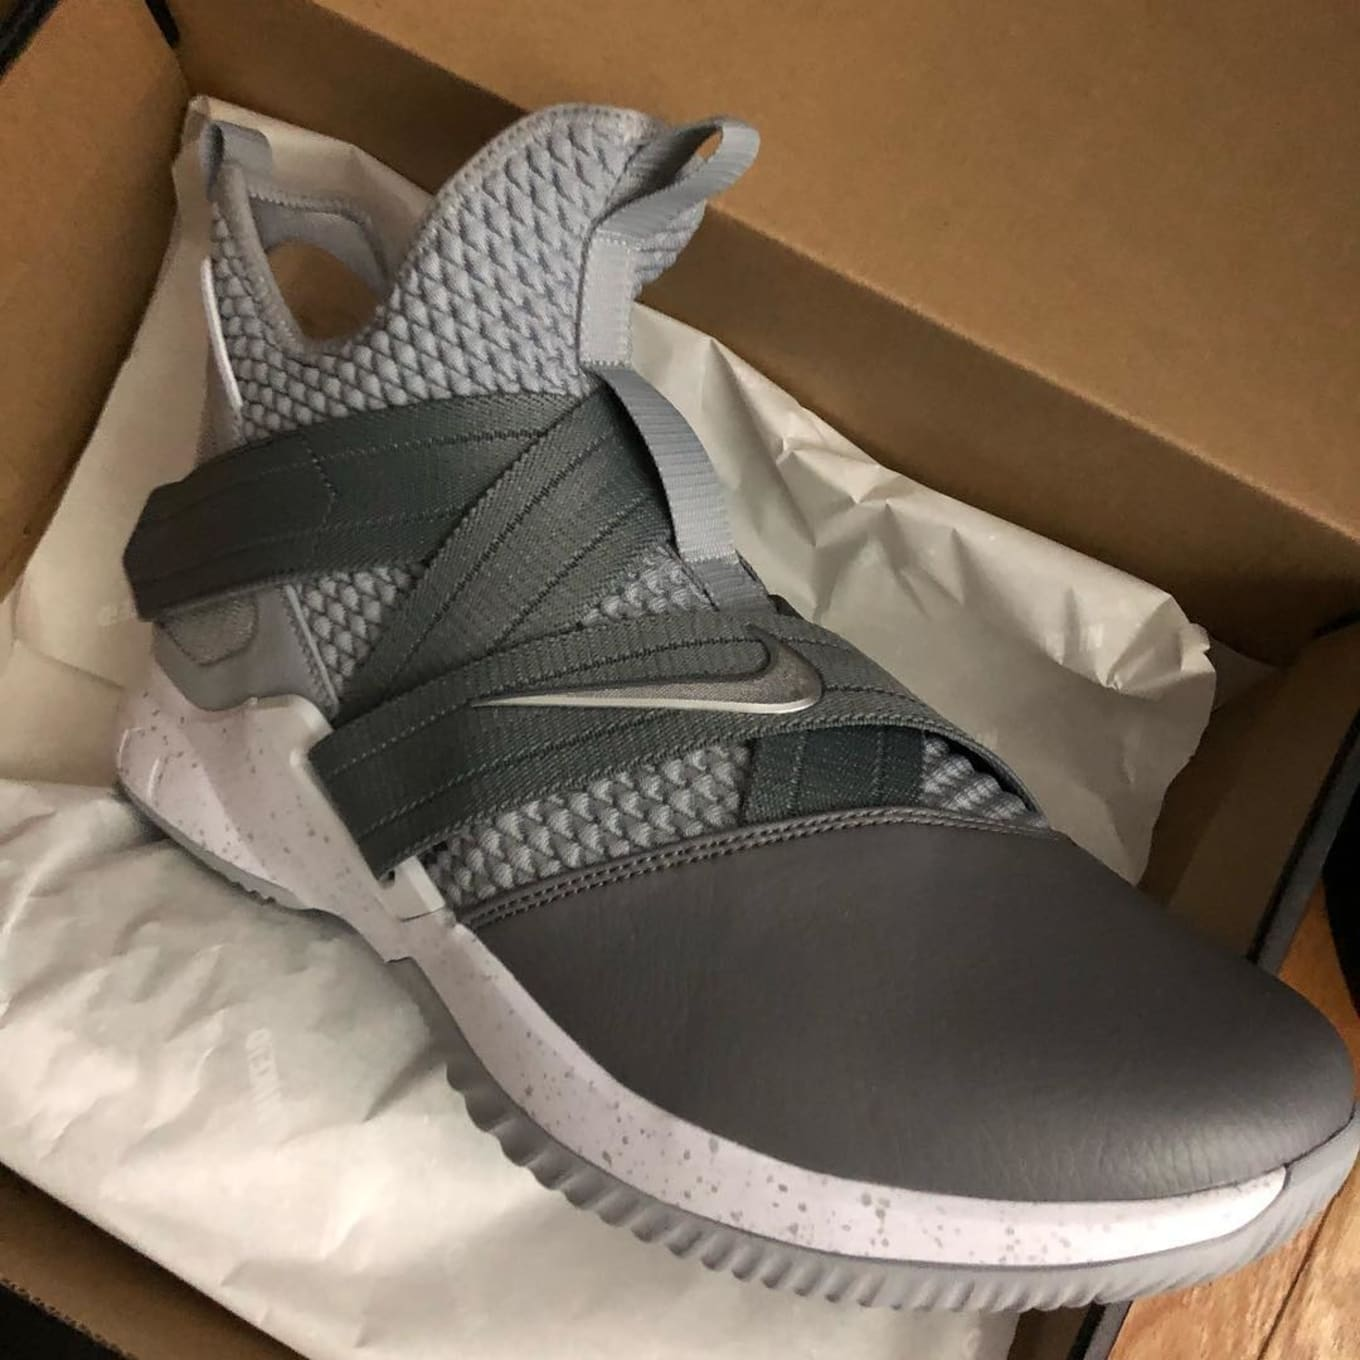 best sneakers f7715 8b854 NIKEiD LeBron Soldier 12 Designs | Sole Collector